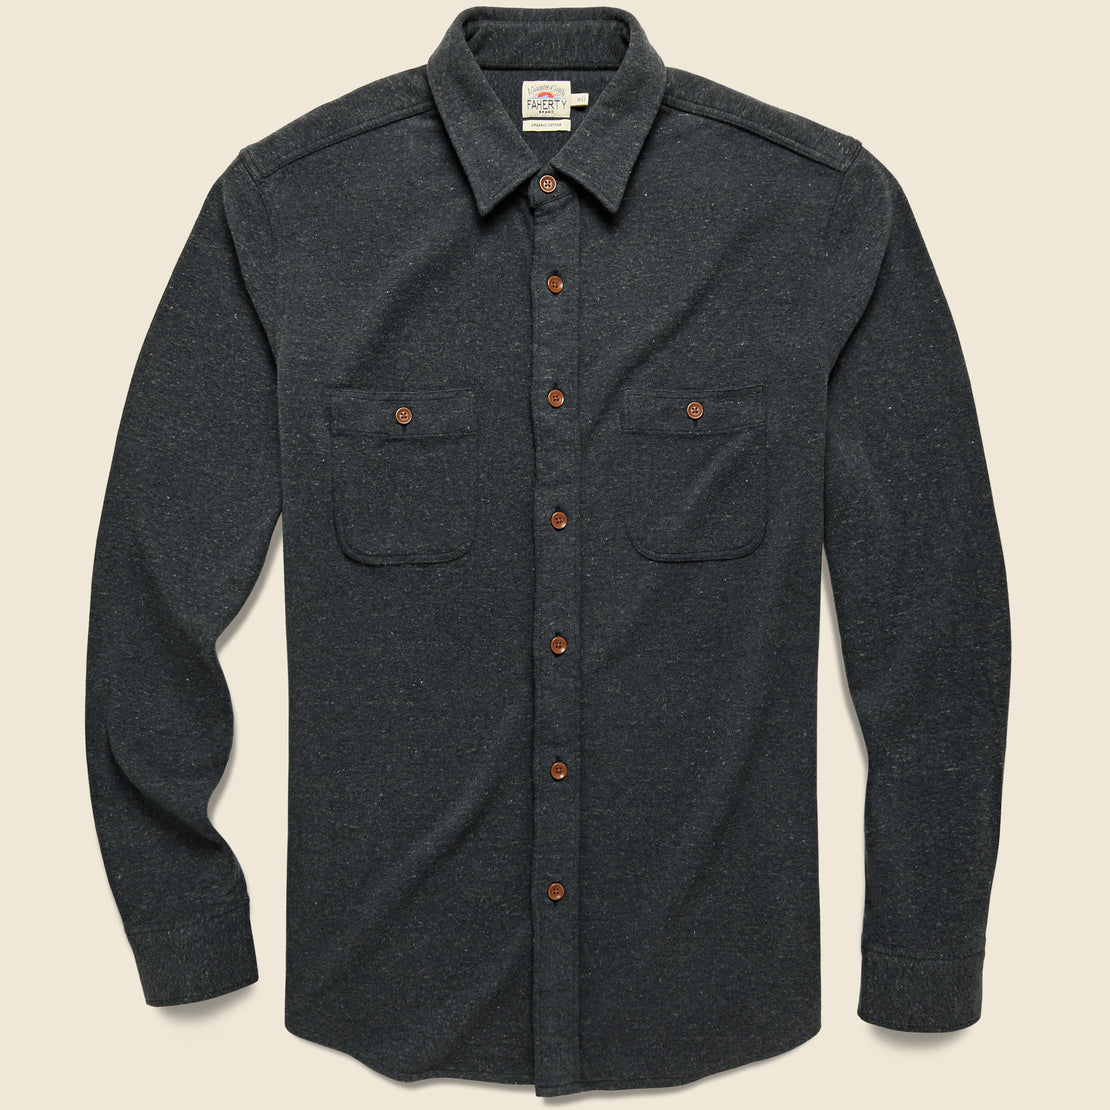 Faherty Knit Alpine Flannel - Charcoal Heather